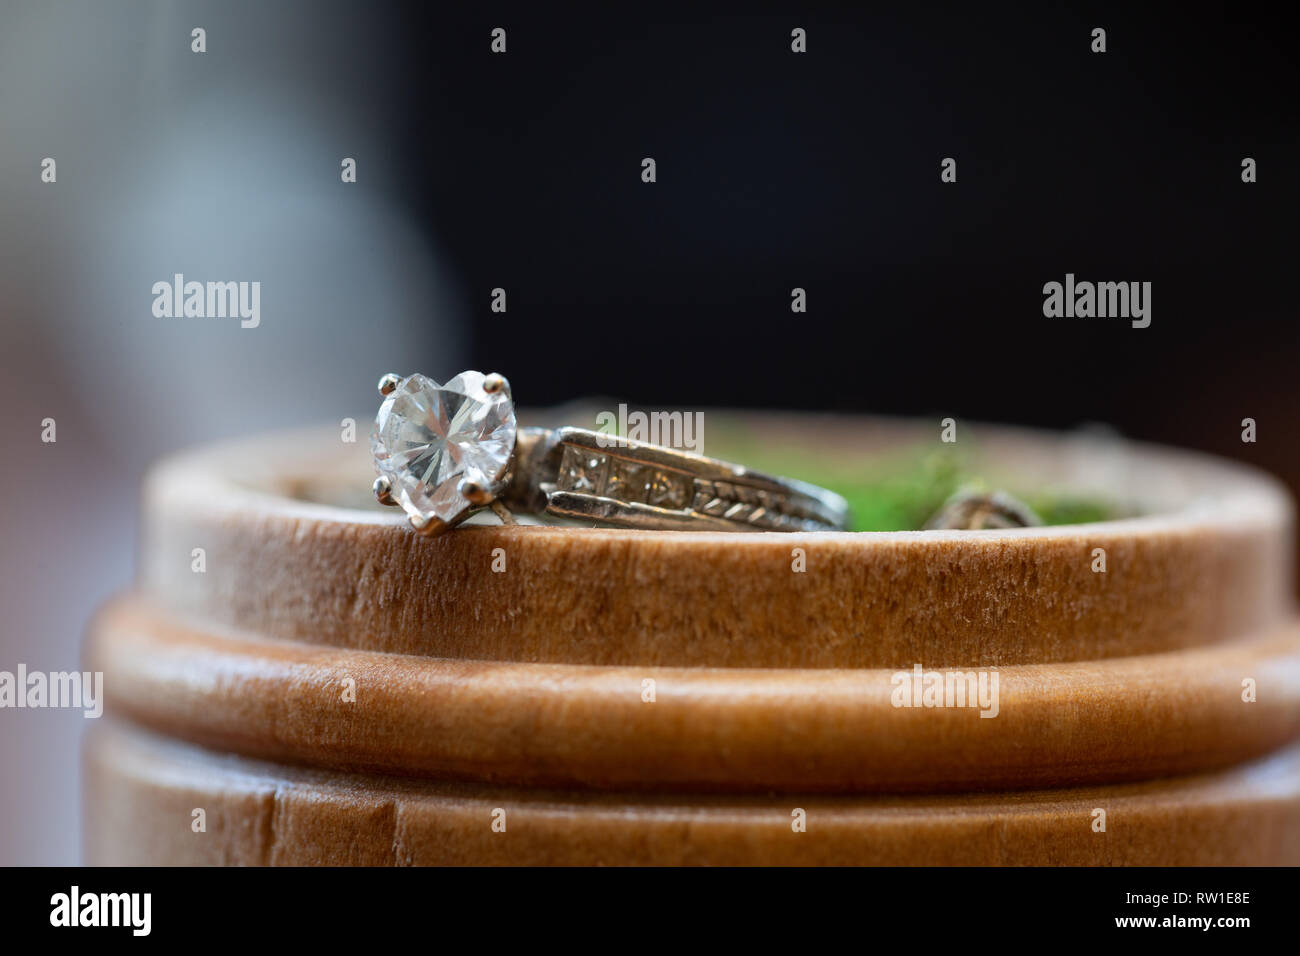 Macro photo of an engagement ring on a wooden box - Stock Image